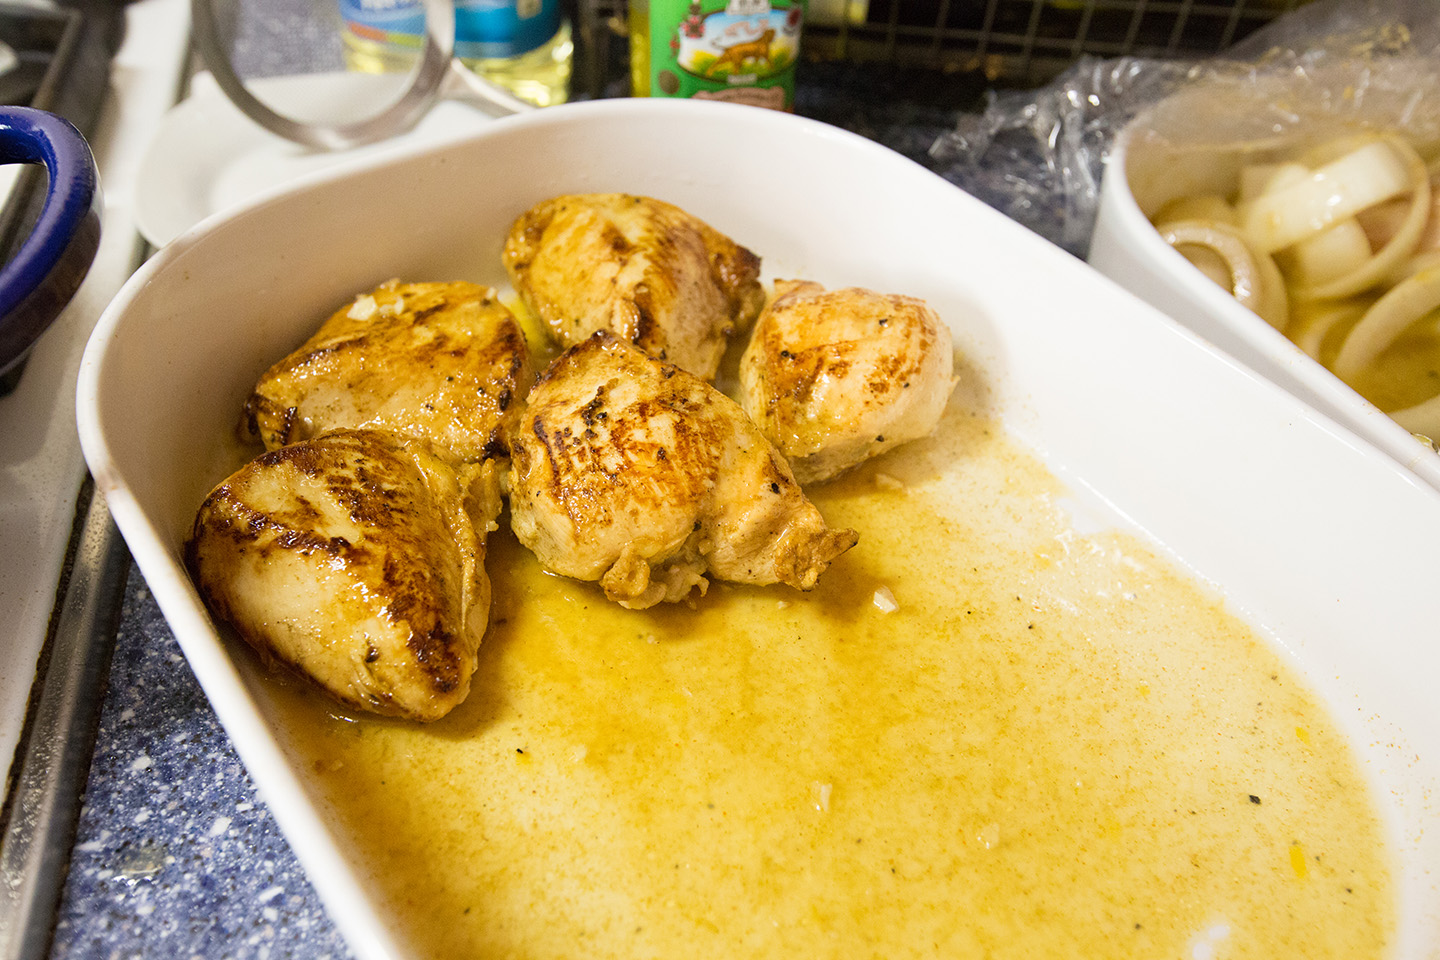 The browned breasts ready for the oven